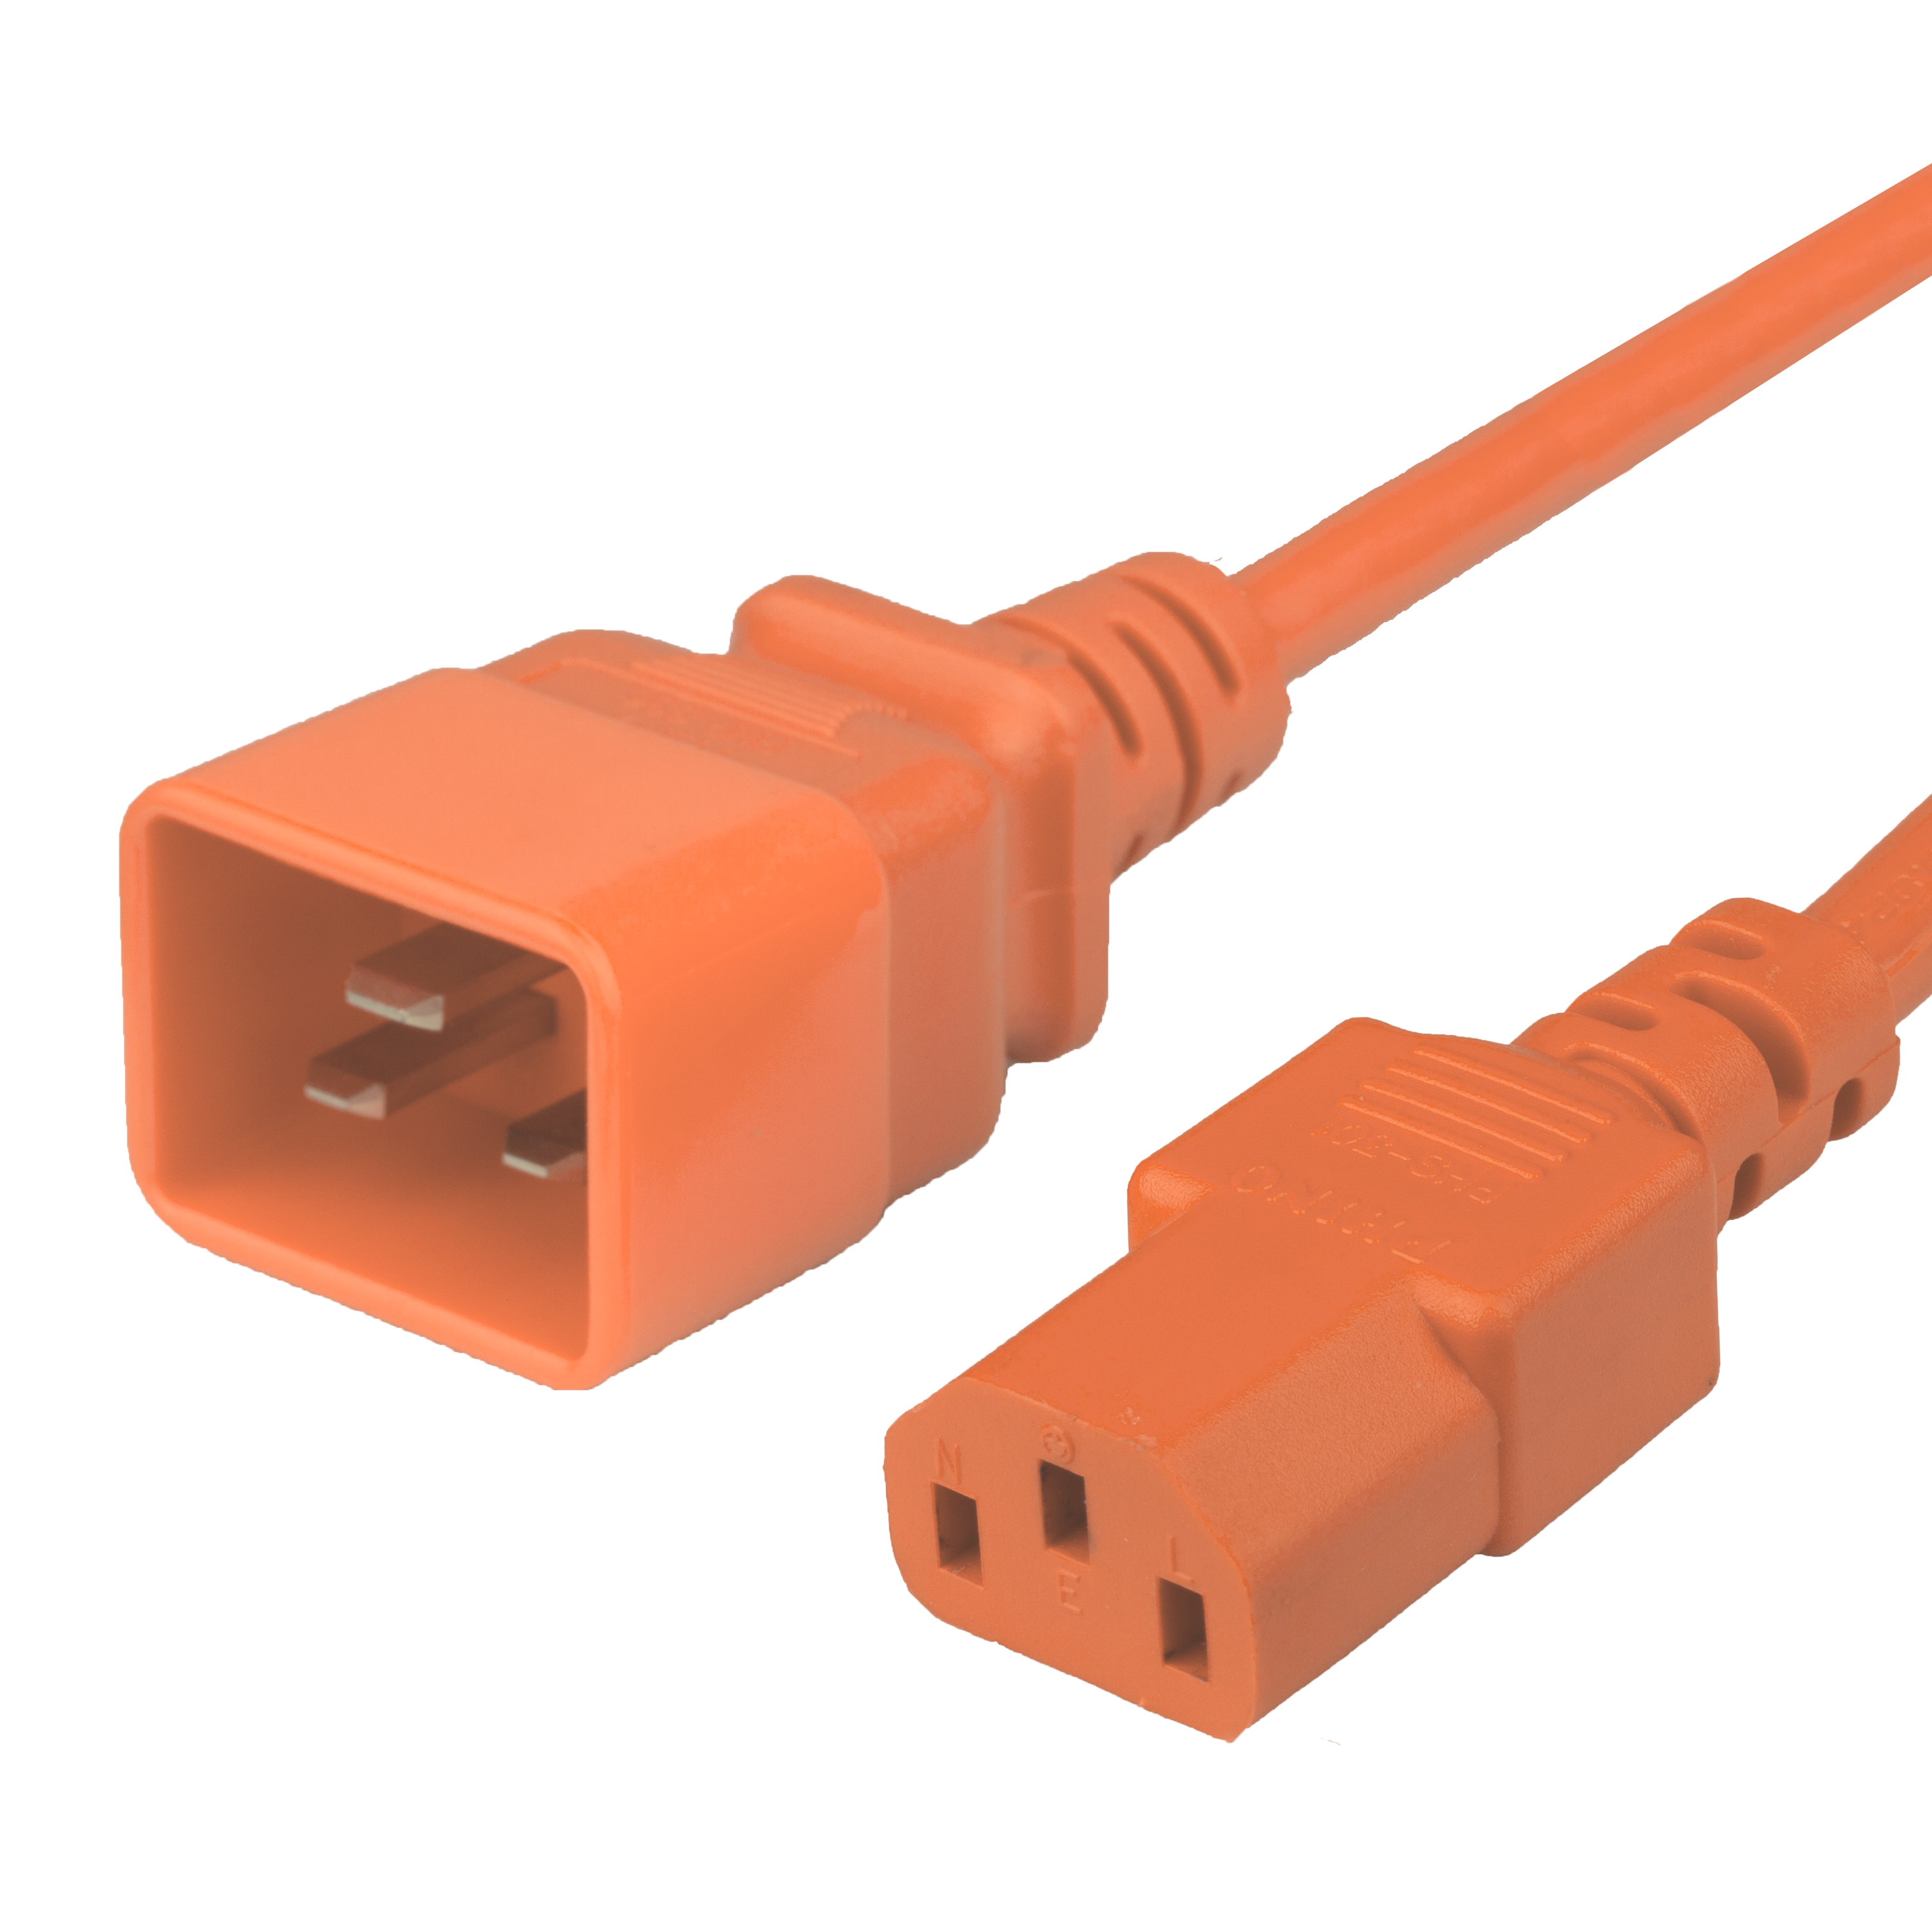 15A C20 C13 Power Cords - ORANGE